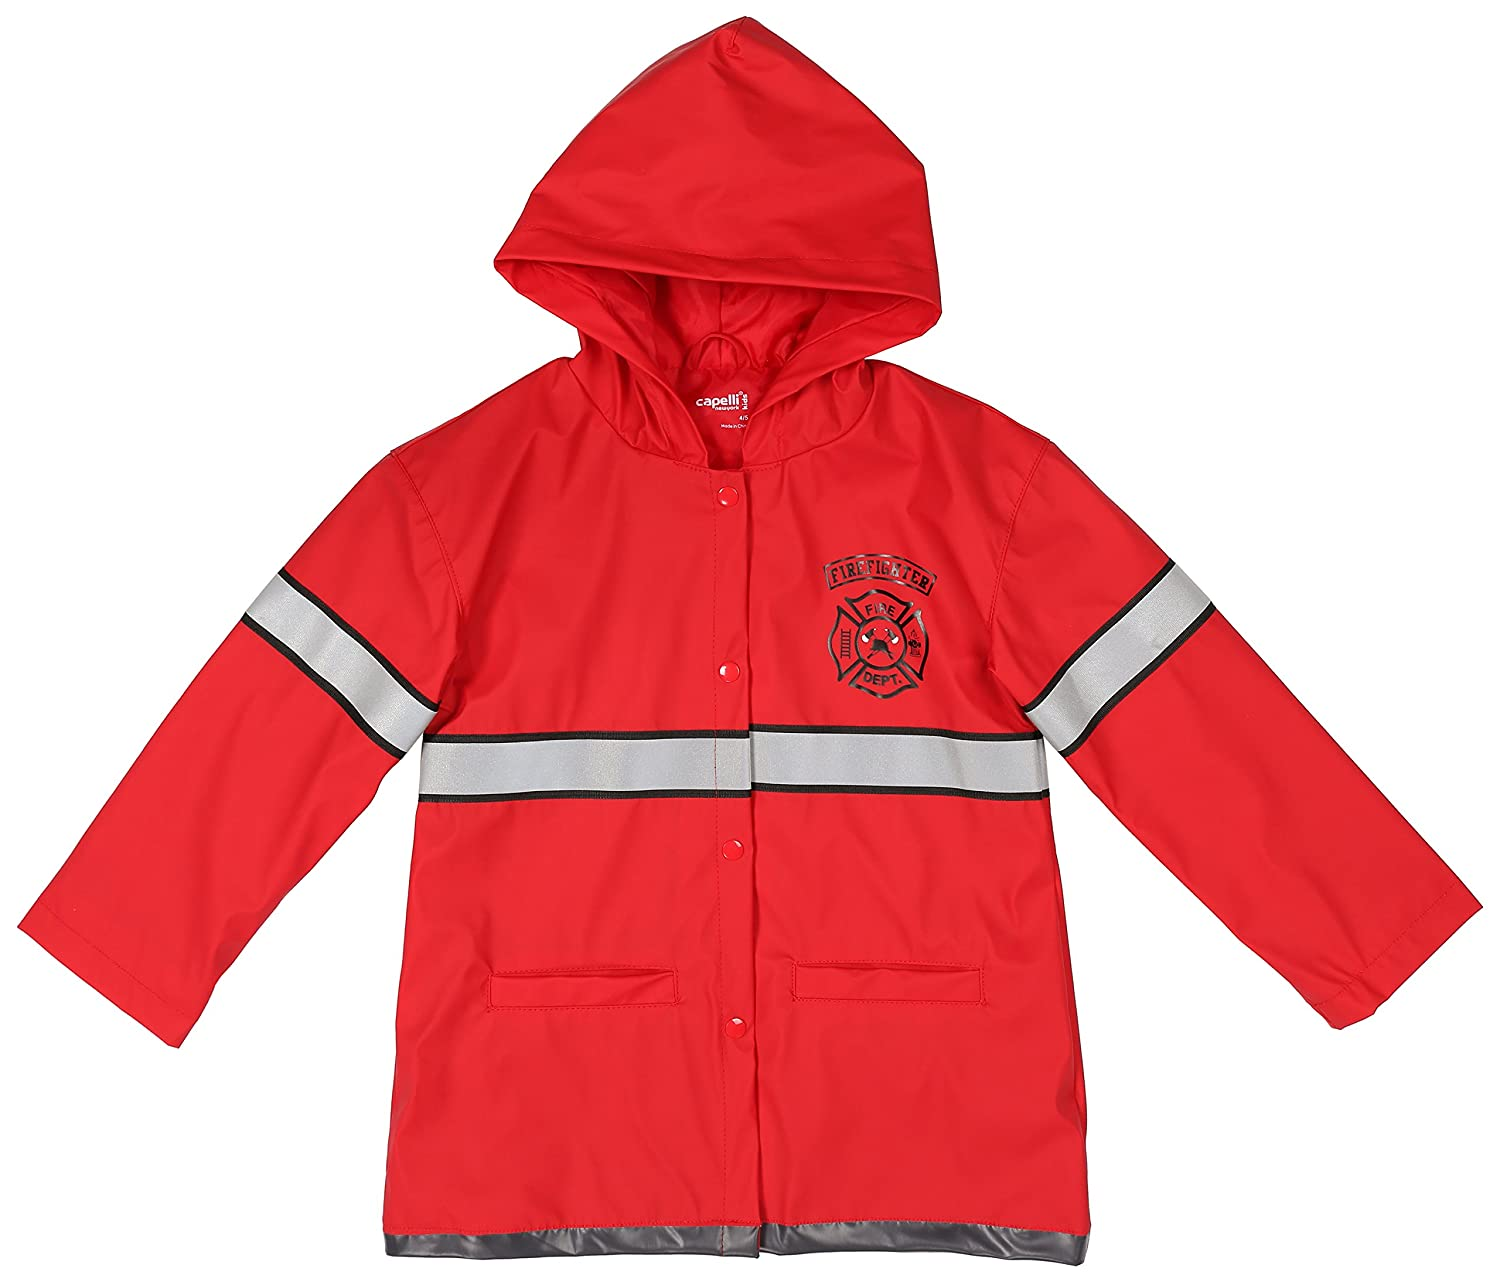 Capelli New York Toddler Boys Policeman Style Rain Slicker with Hood and Pockets RCTB-103